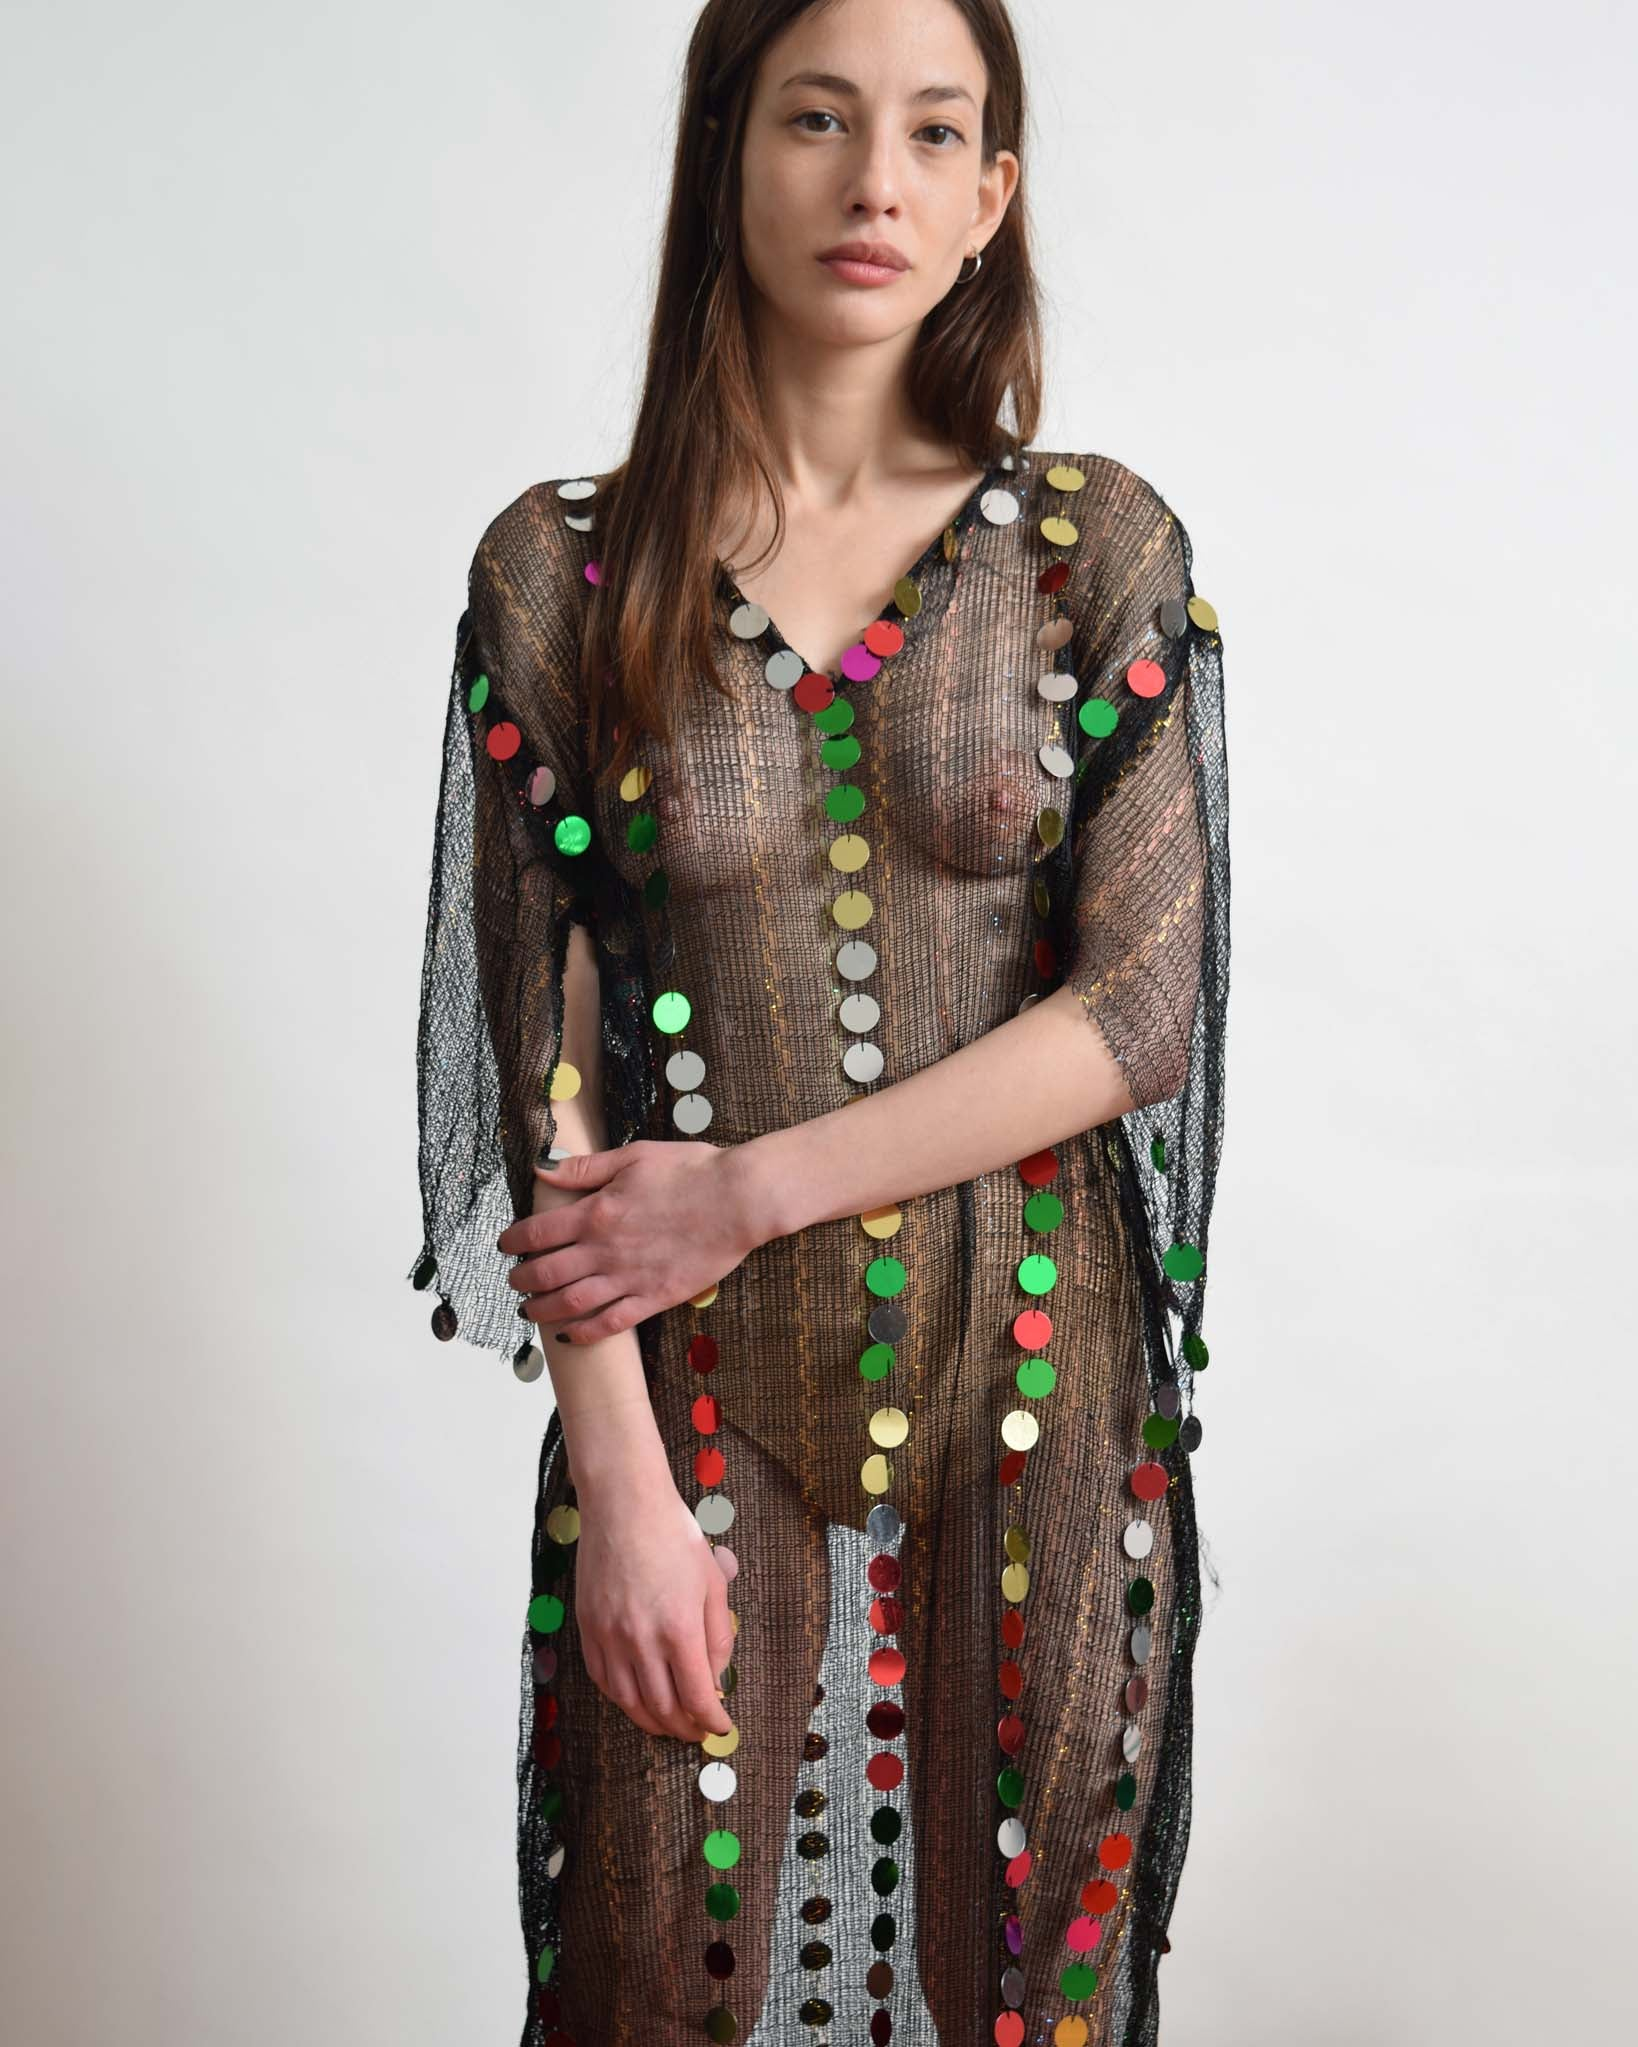 Vintage Sheer Confetti Dress